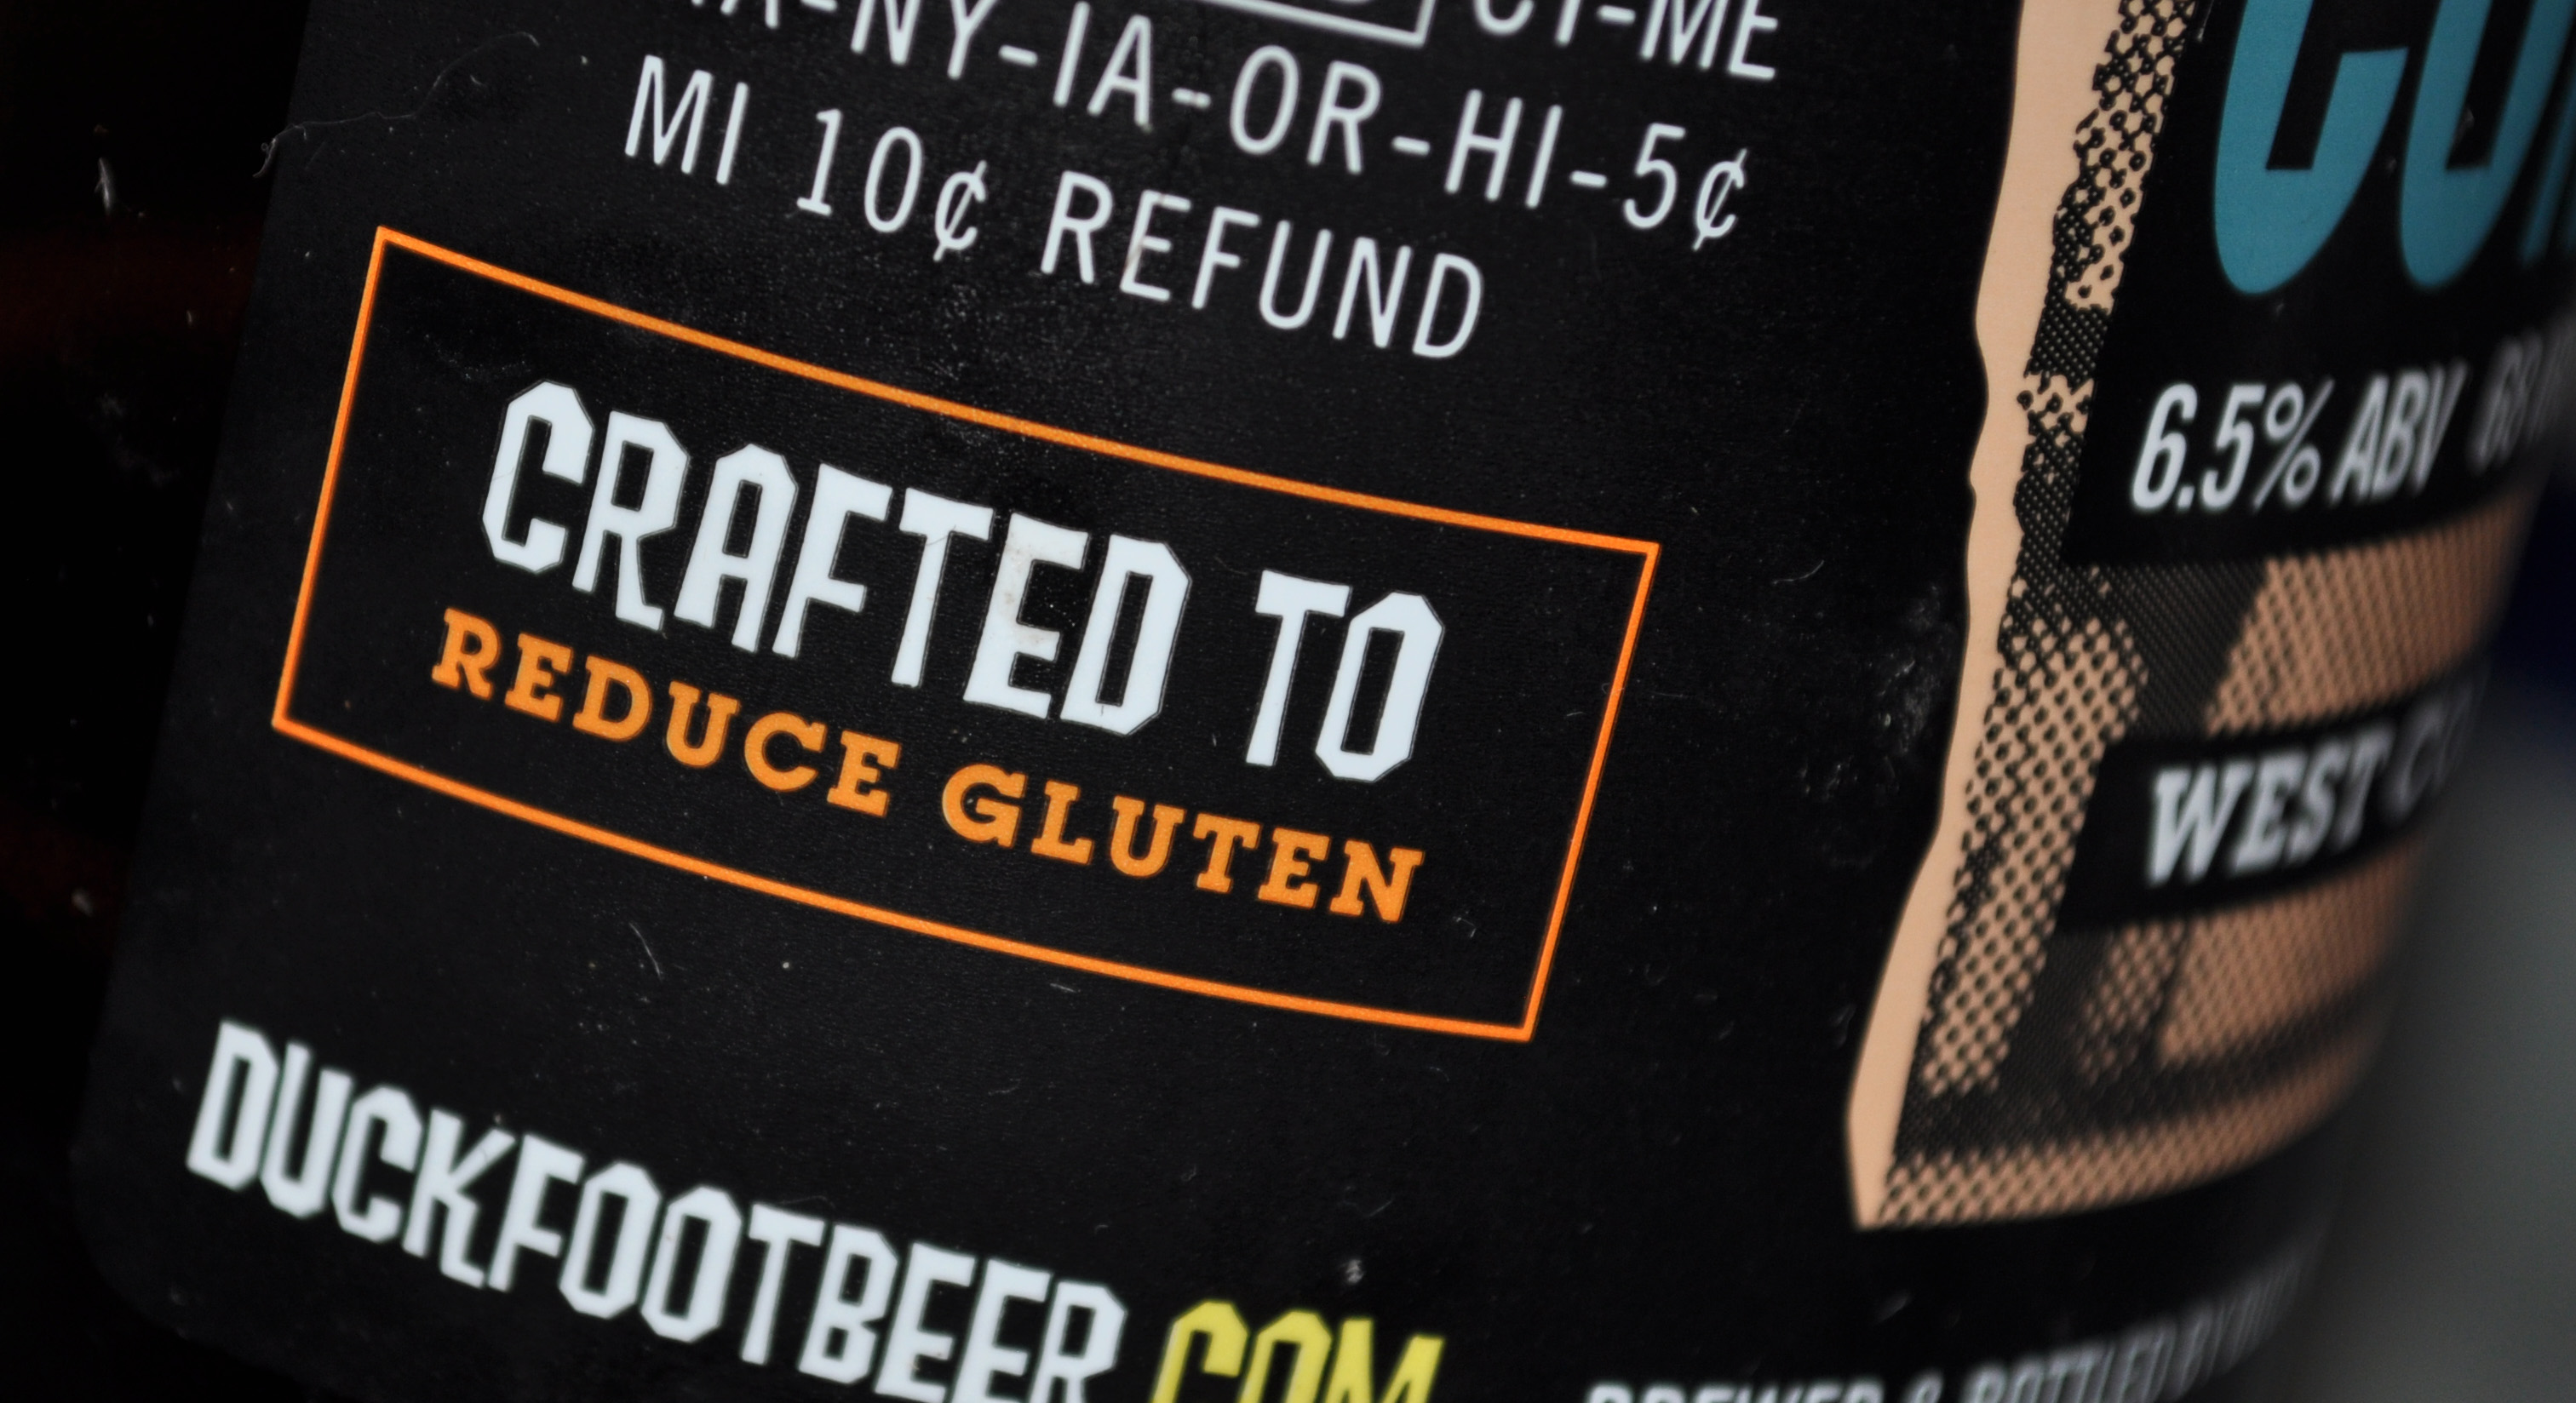 Beer brewed from glutinous grains can't call themselves gluten-free; only gluten reduced.